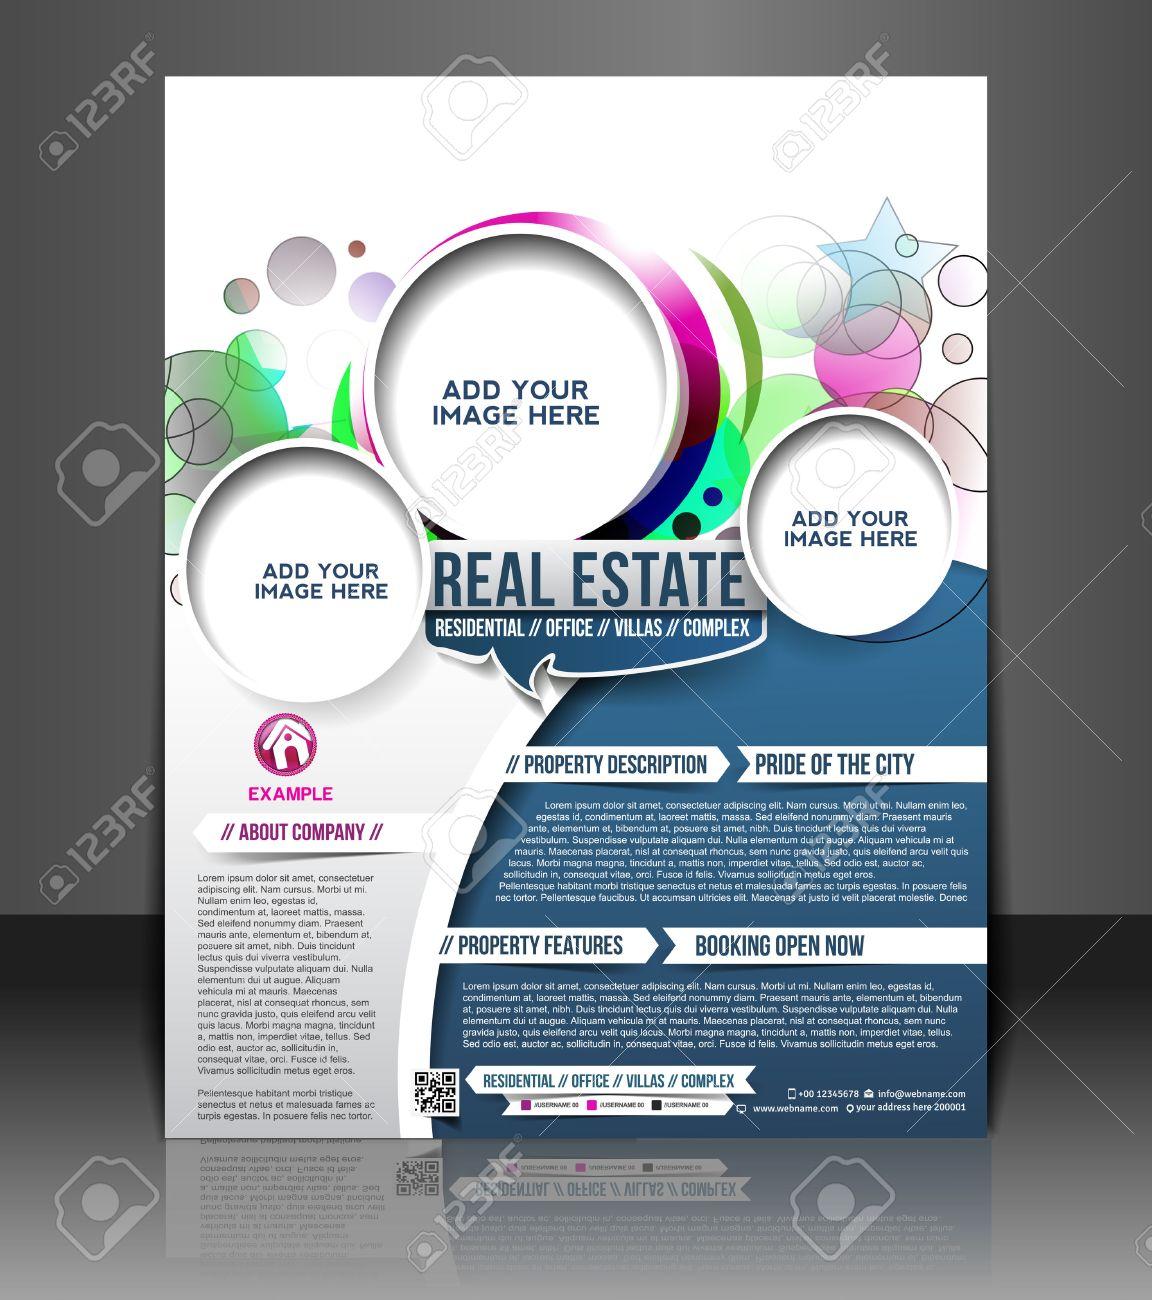 real estate flyer poster template design royalty cliparts real estate flyer poster template design stock vector 26623008